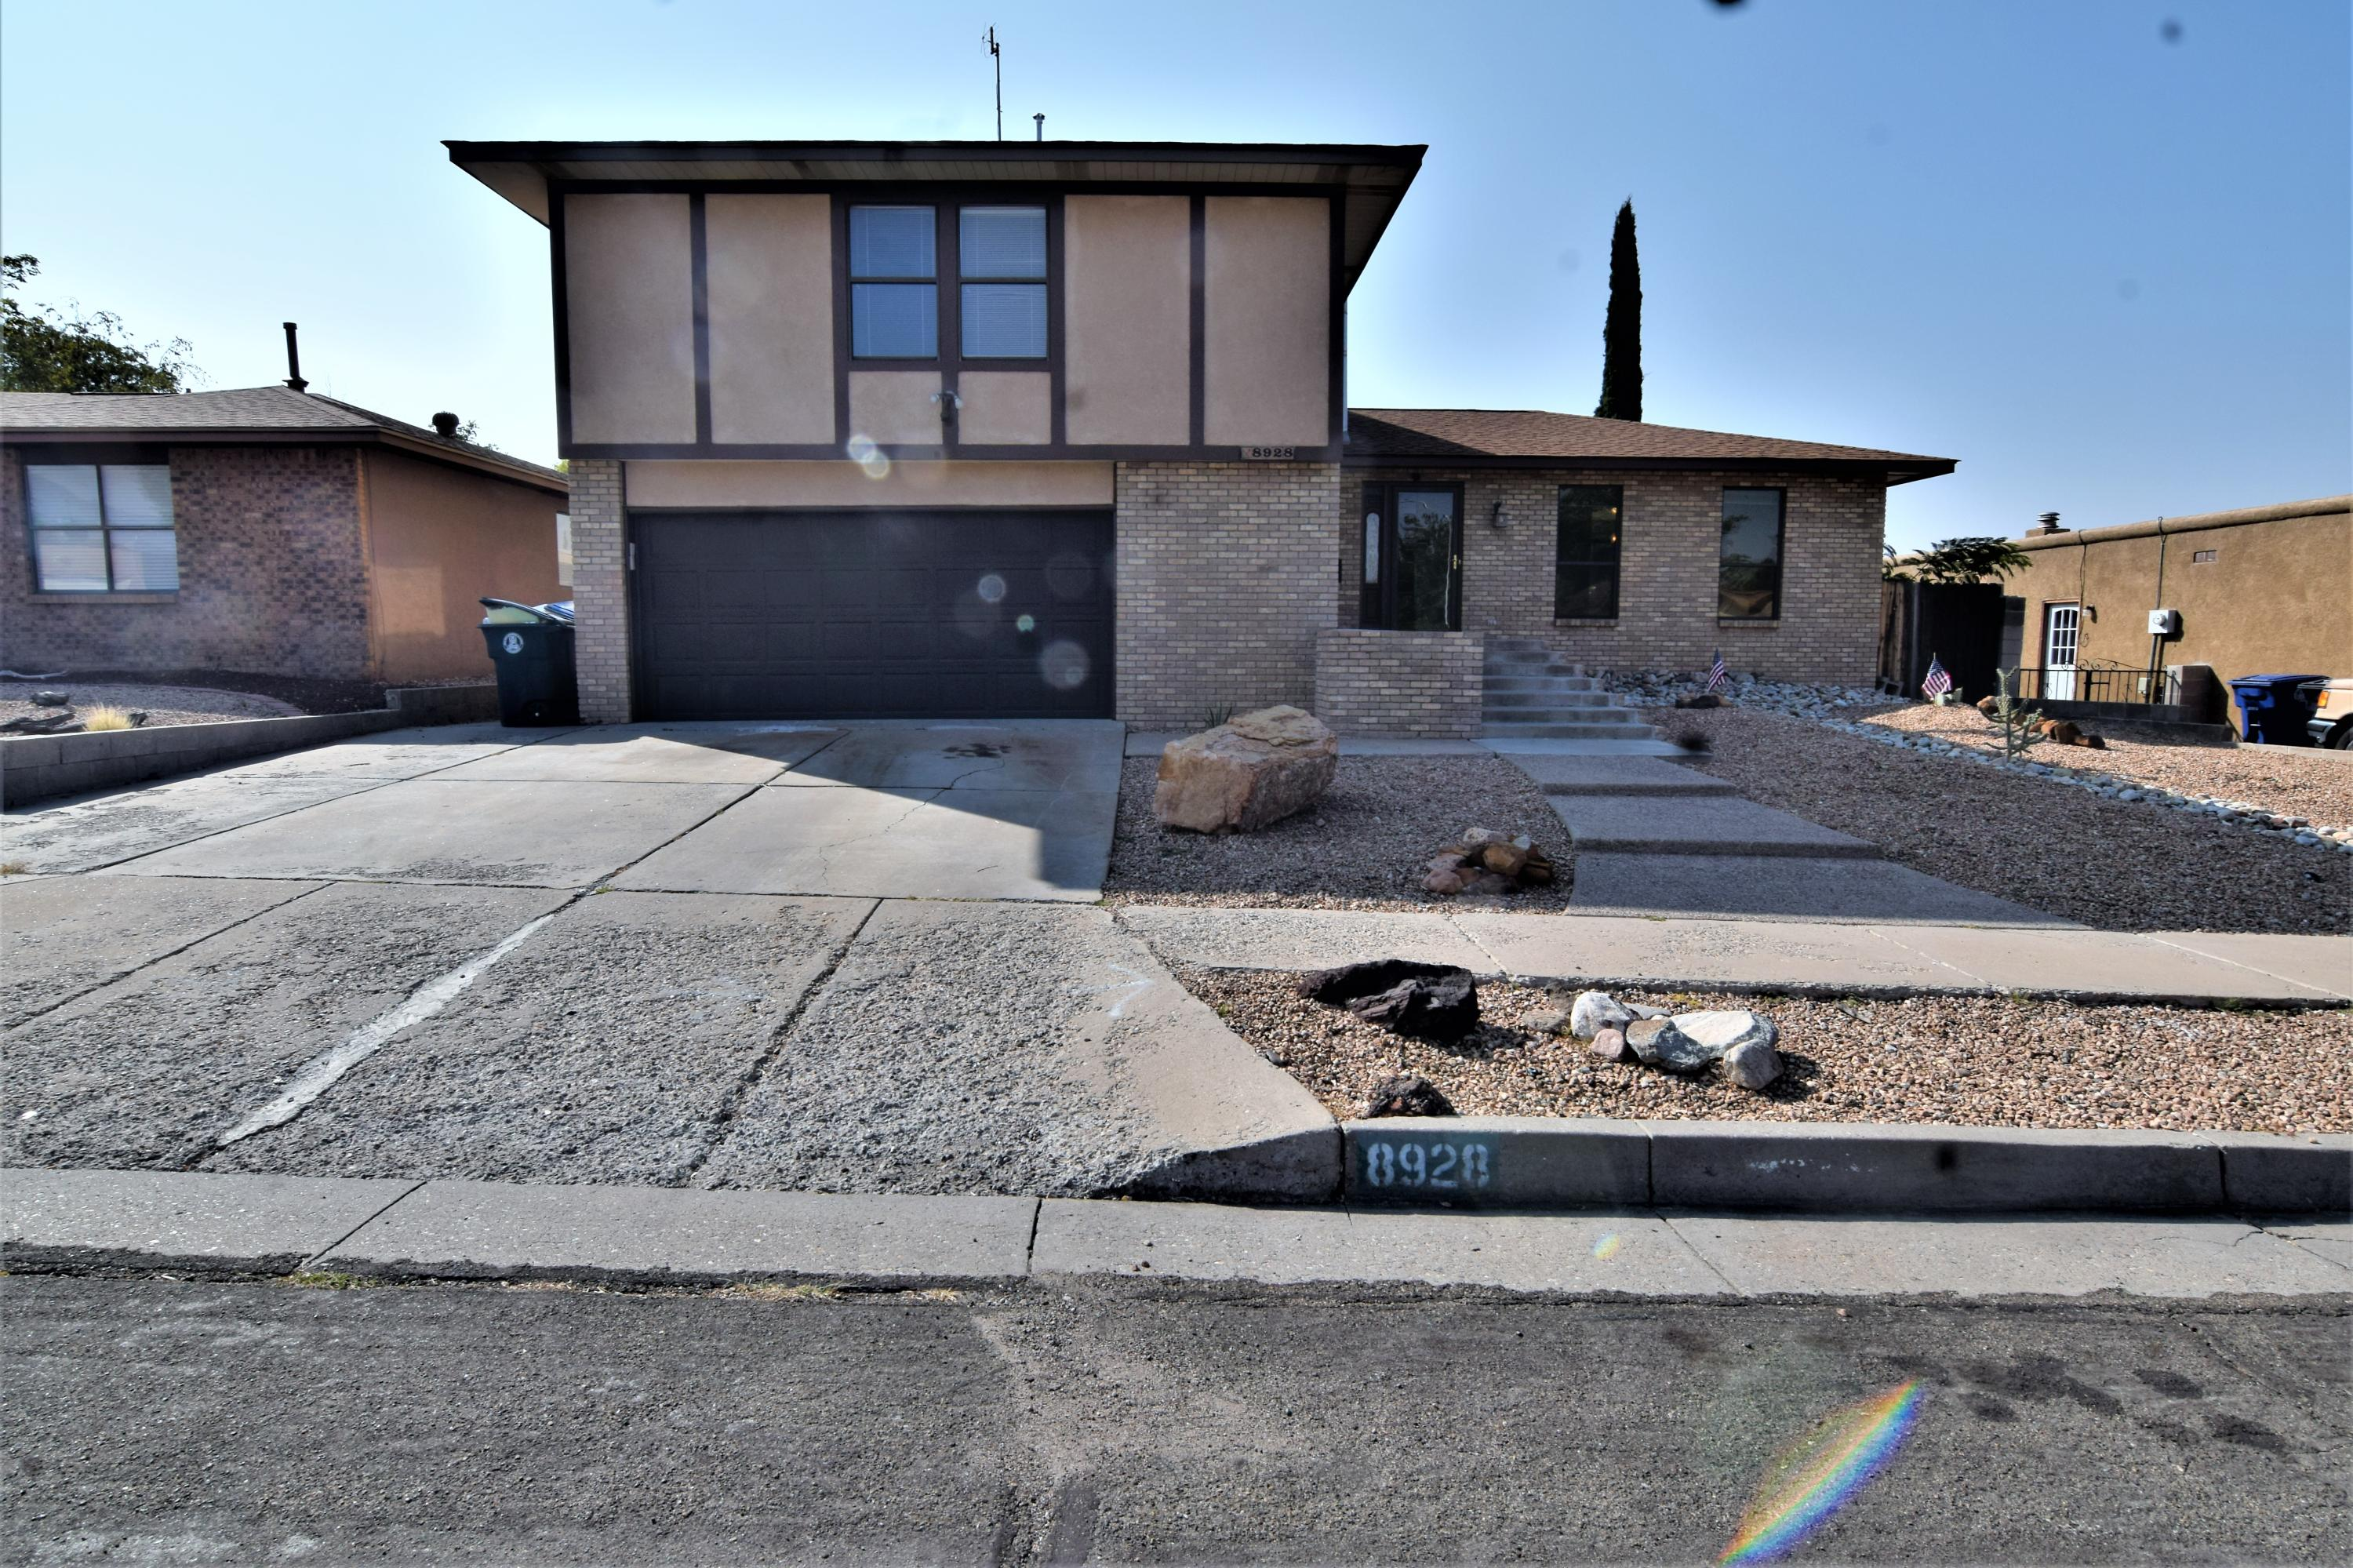 Recently updated home  in La Cueva High district!   Don't miss the split level home  with an open, flowing floorplan! It has na custom Chef's kitchen with tons of counter space and pull-out cabinet shelves!    Relax in the in-ground pool and hot tub! Newer TPO roof, updated flooring, and more!  Low maintenance landscaping and a beautiful rose garden in the backyard.   See this one Today!